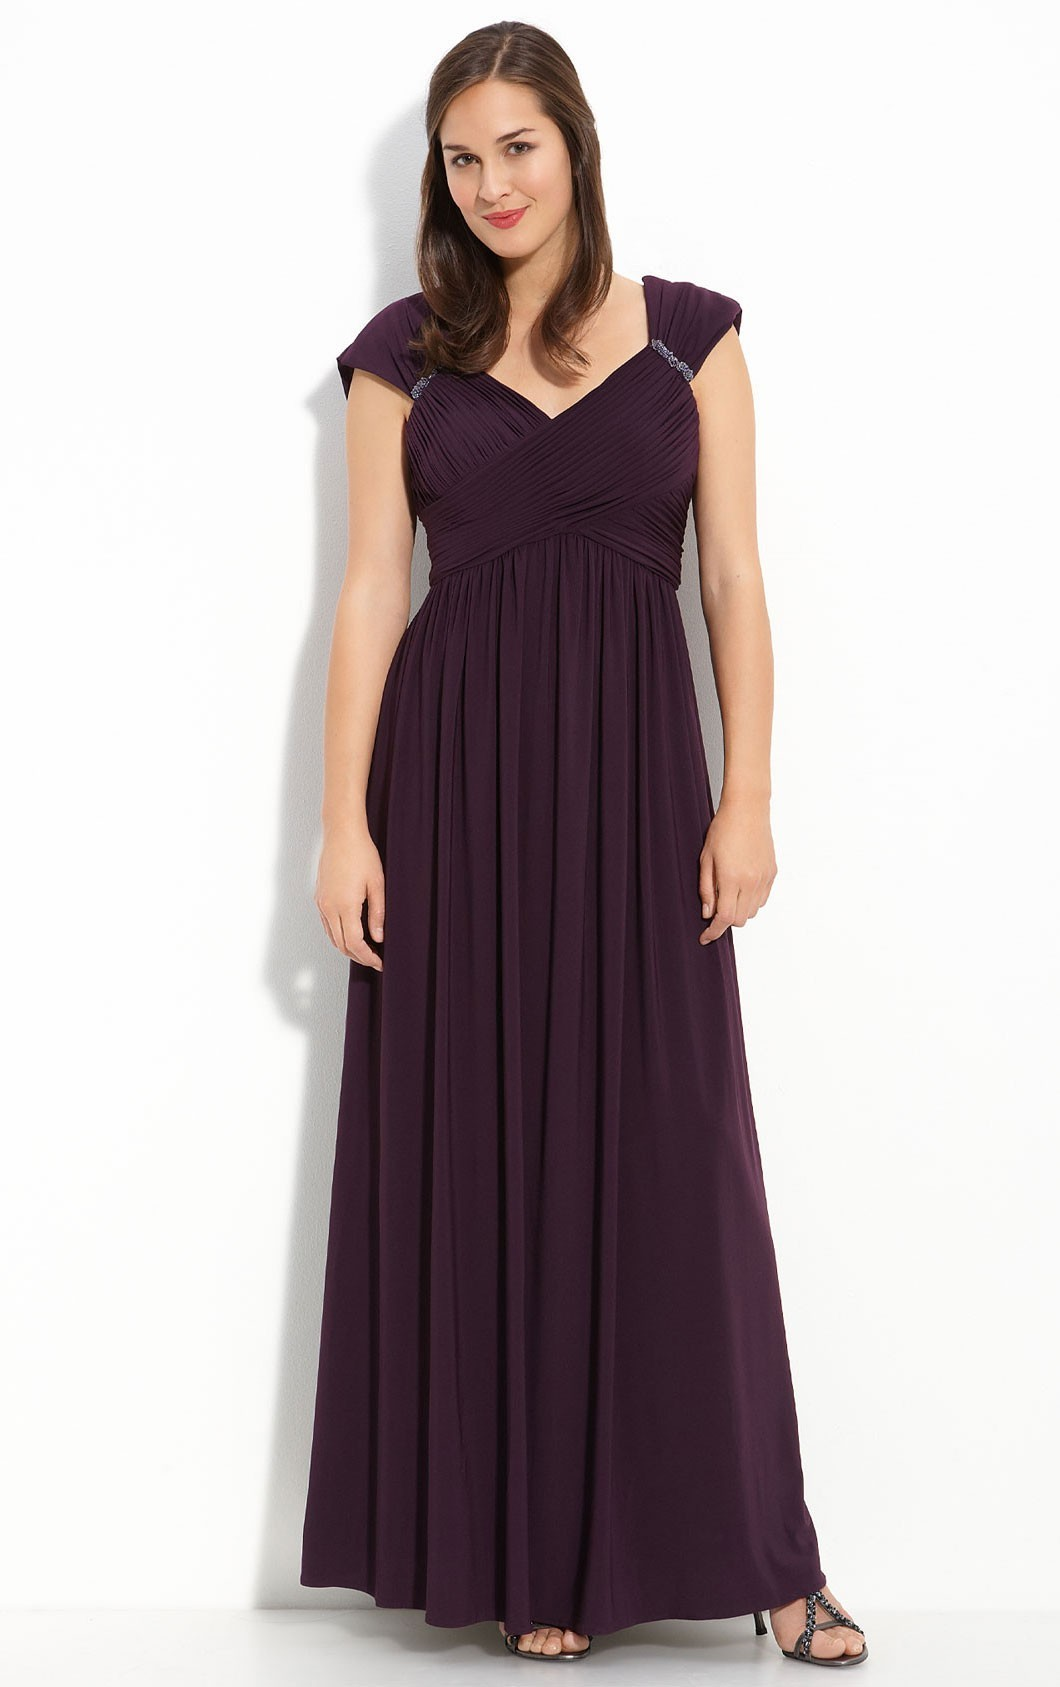 Plus Size Cocktail Dresses Online Canada | Shopping Guide ...